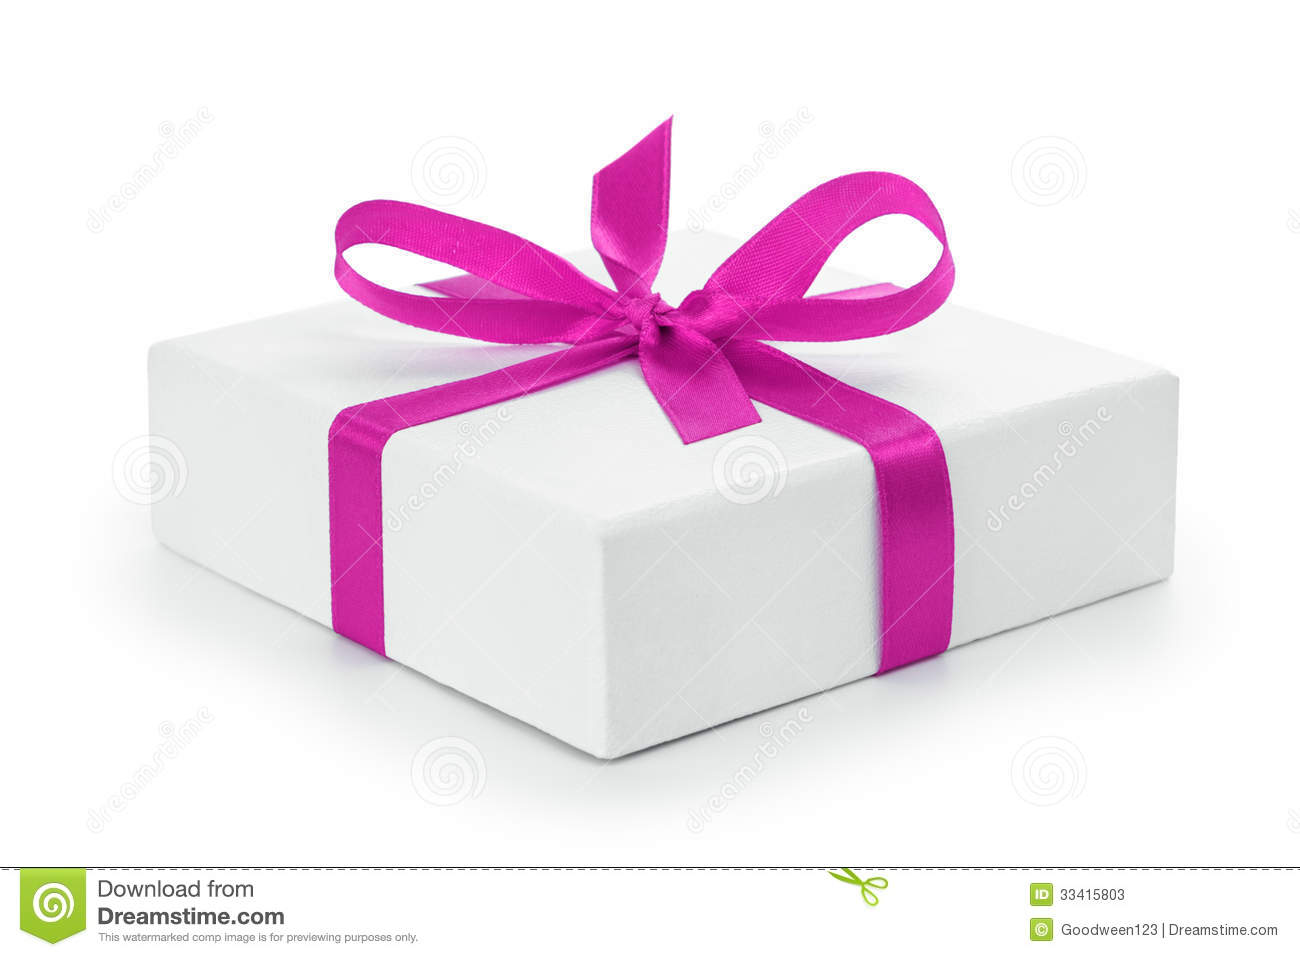 White textured gift box with purple ribbon bow  sc 1 st  Dreamstime.com & White Textured Gift Box With Purple Ribbon Bow Stock Image - Image ...